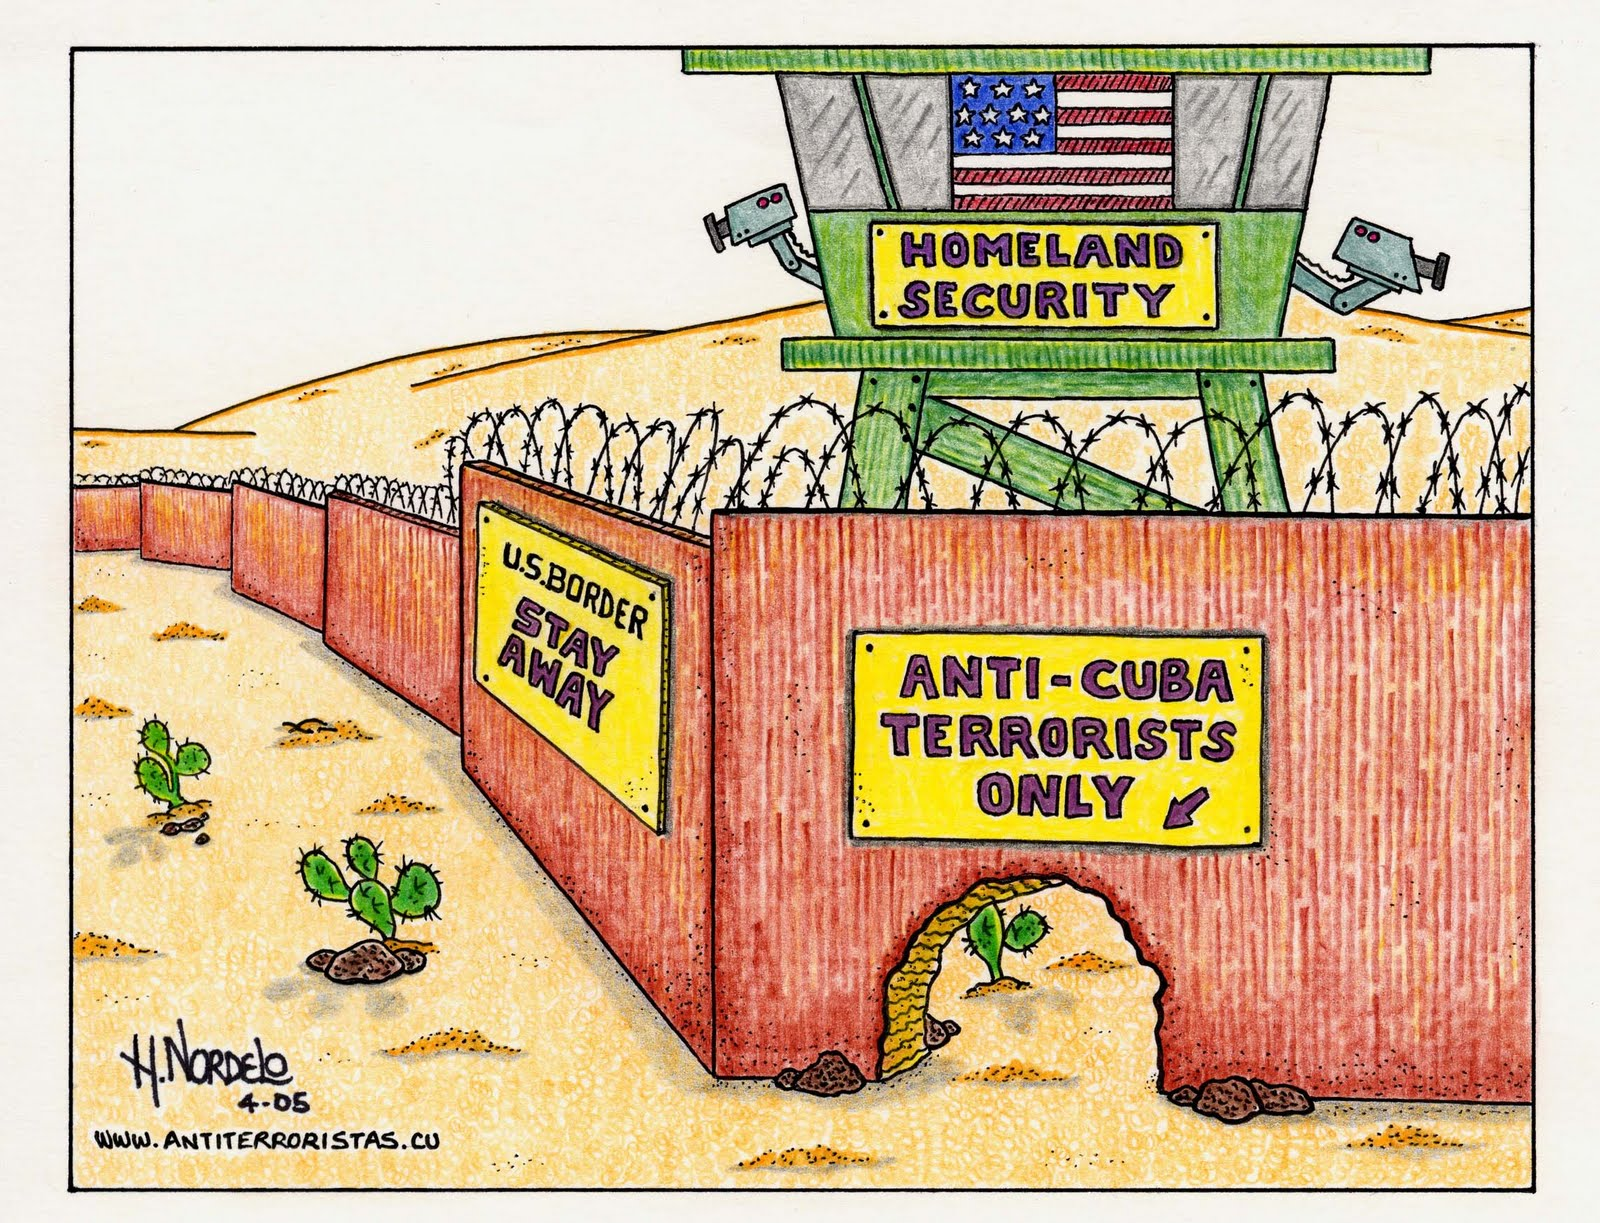 http://wicuba.files.wordpress.com/2012/04/anti-cuba-terrorists-only_fronteras-300-gh.jpg